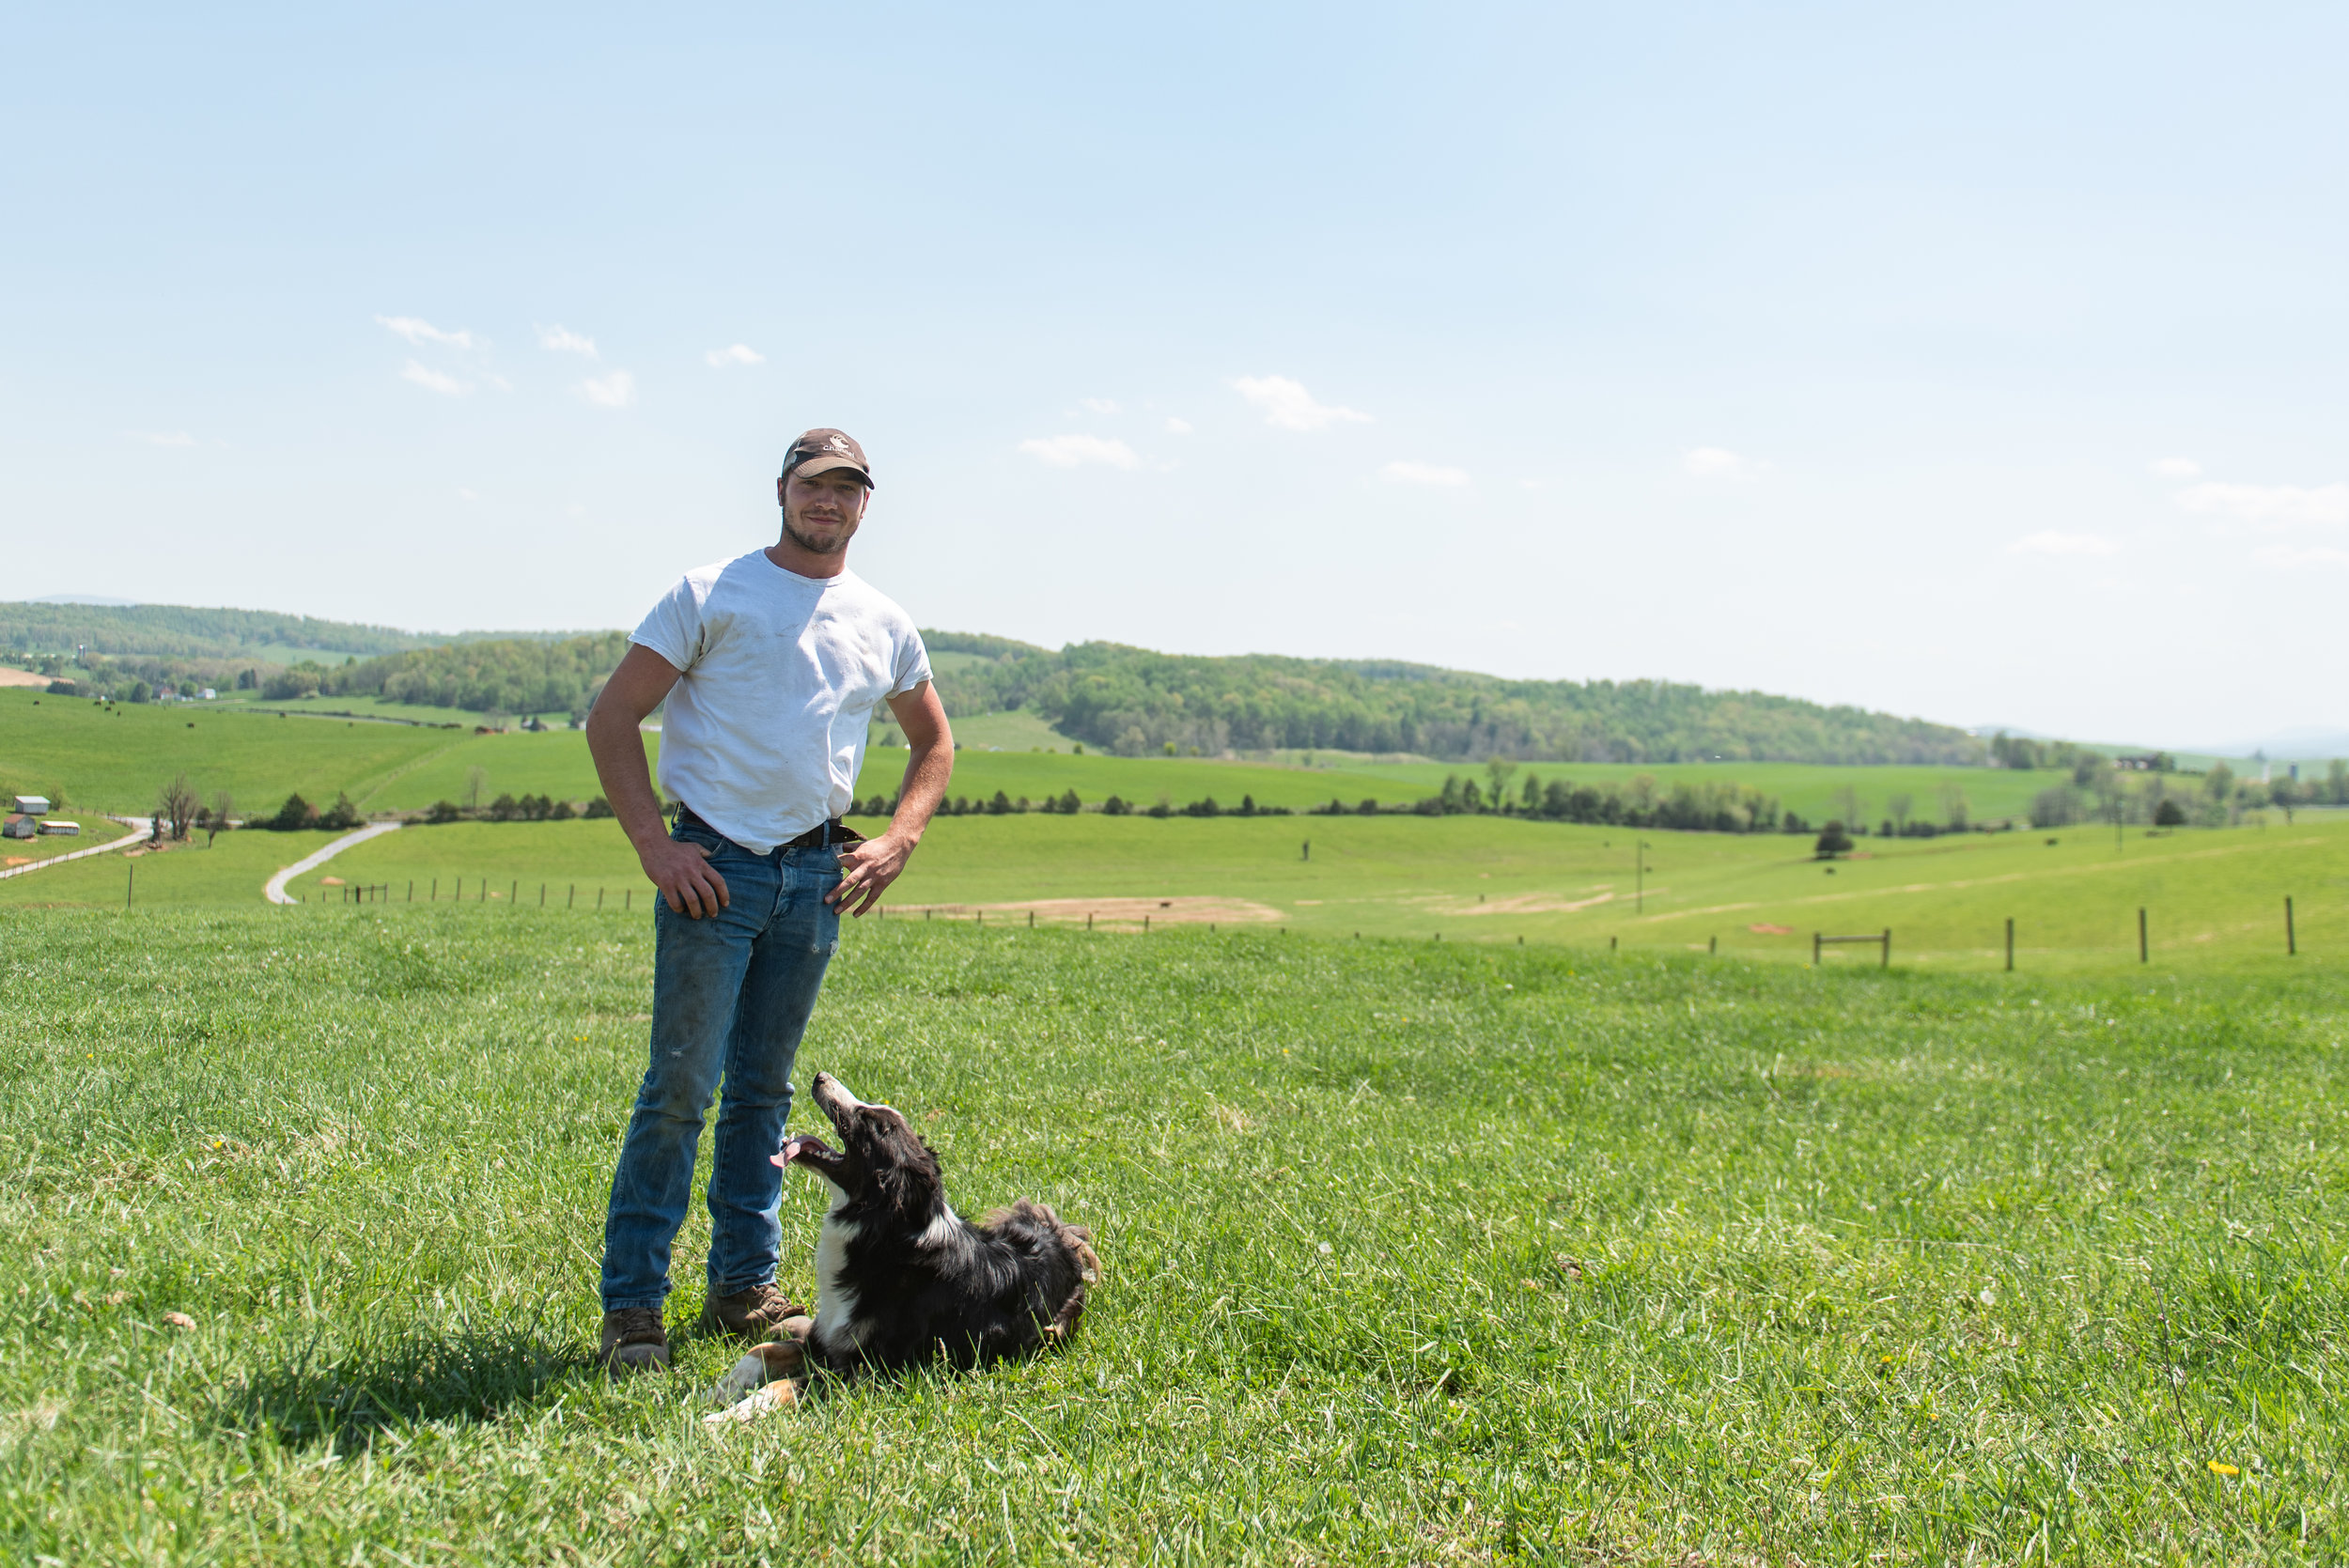 Luke Grant stands on his parent's farm with his dog, Cinch.